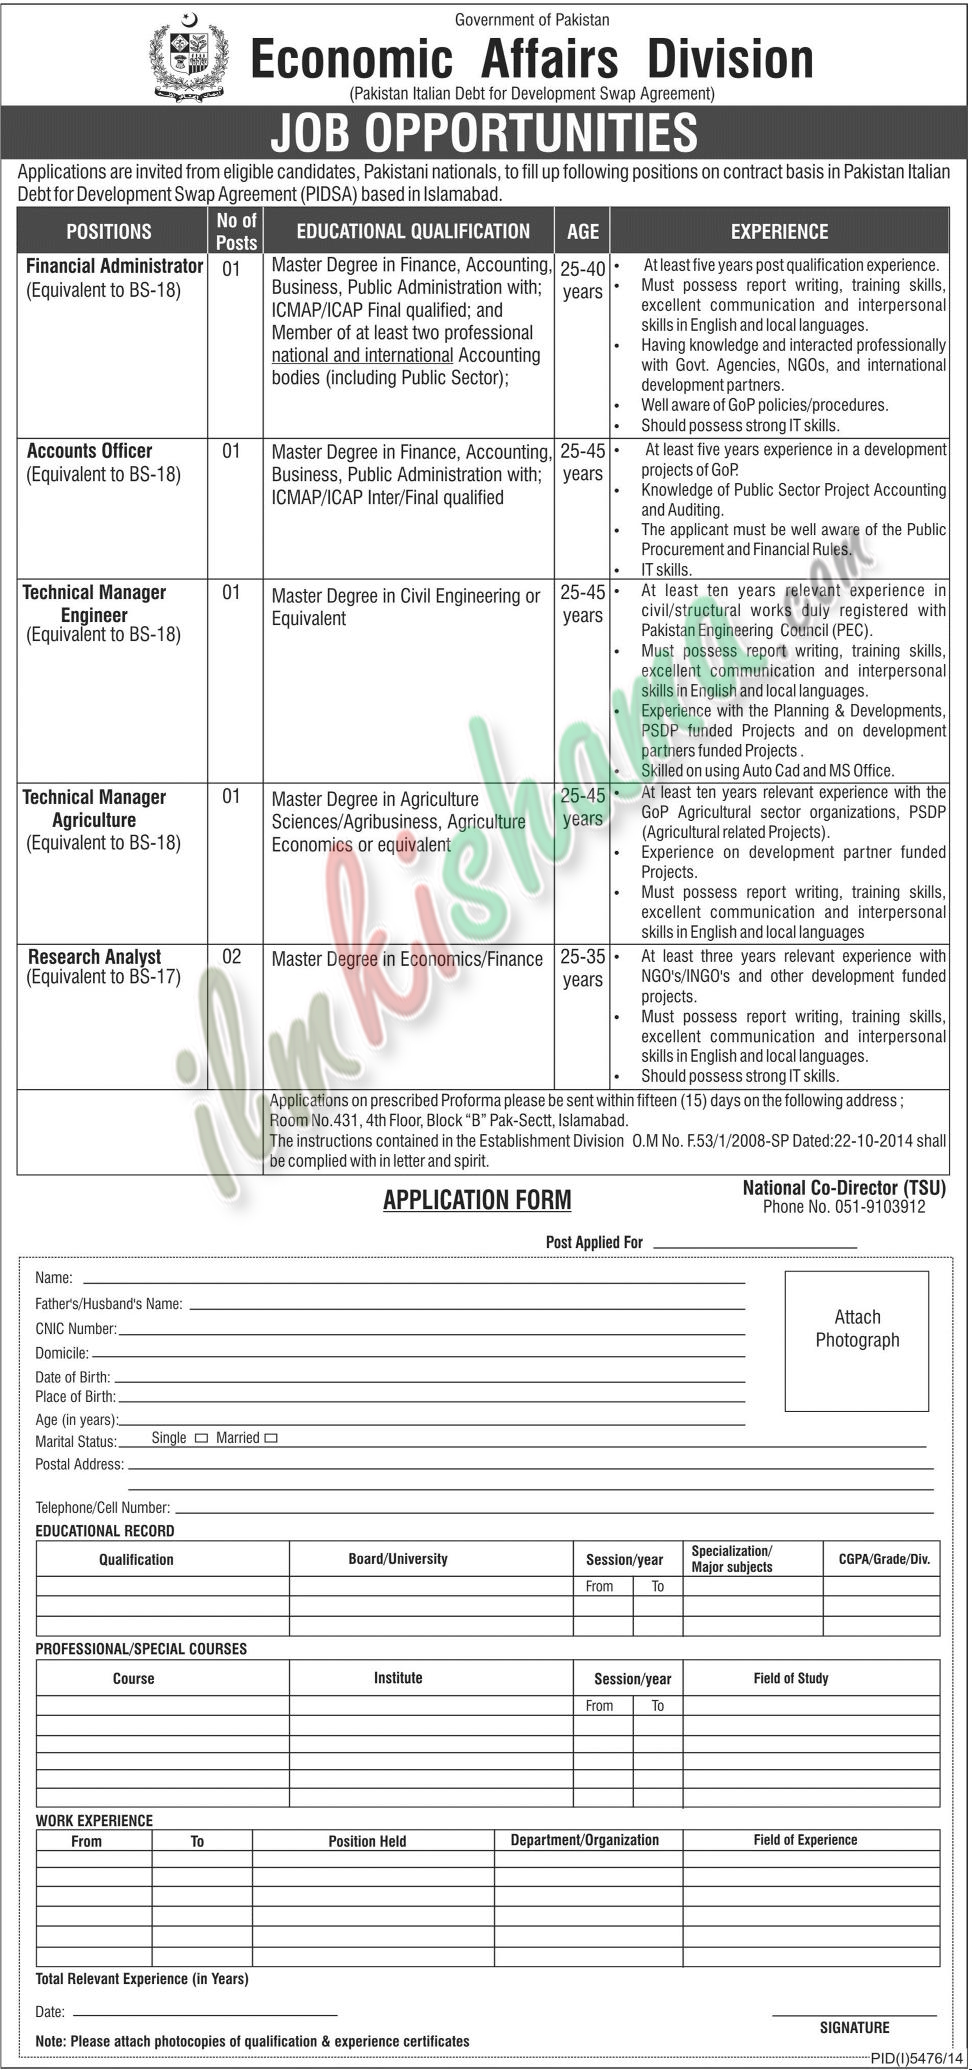 Economic Affairs Division, Islamabad Jobs